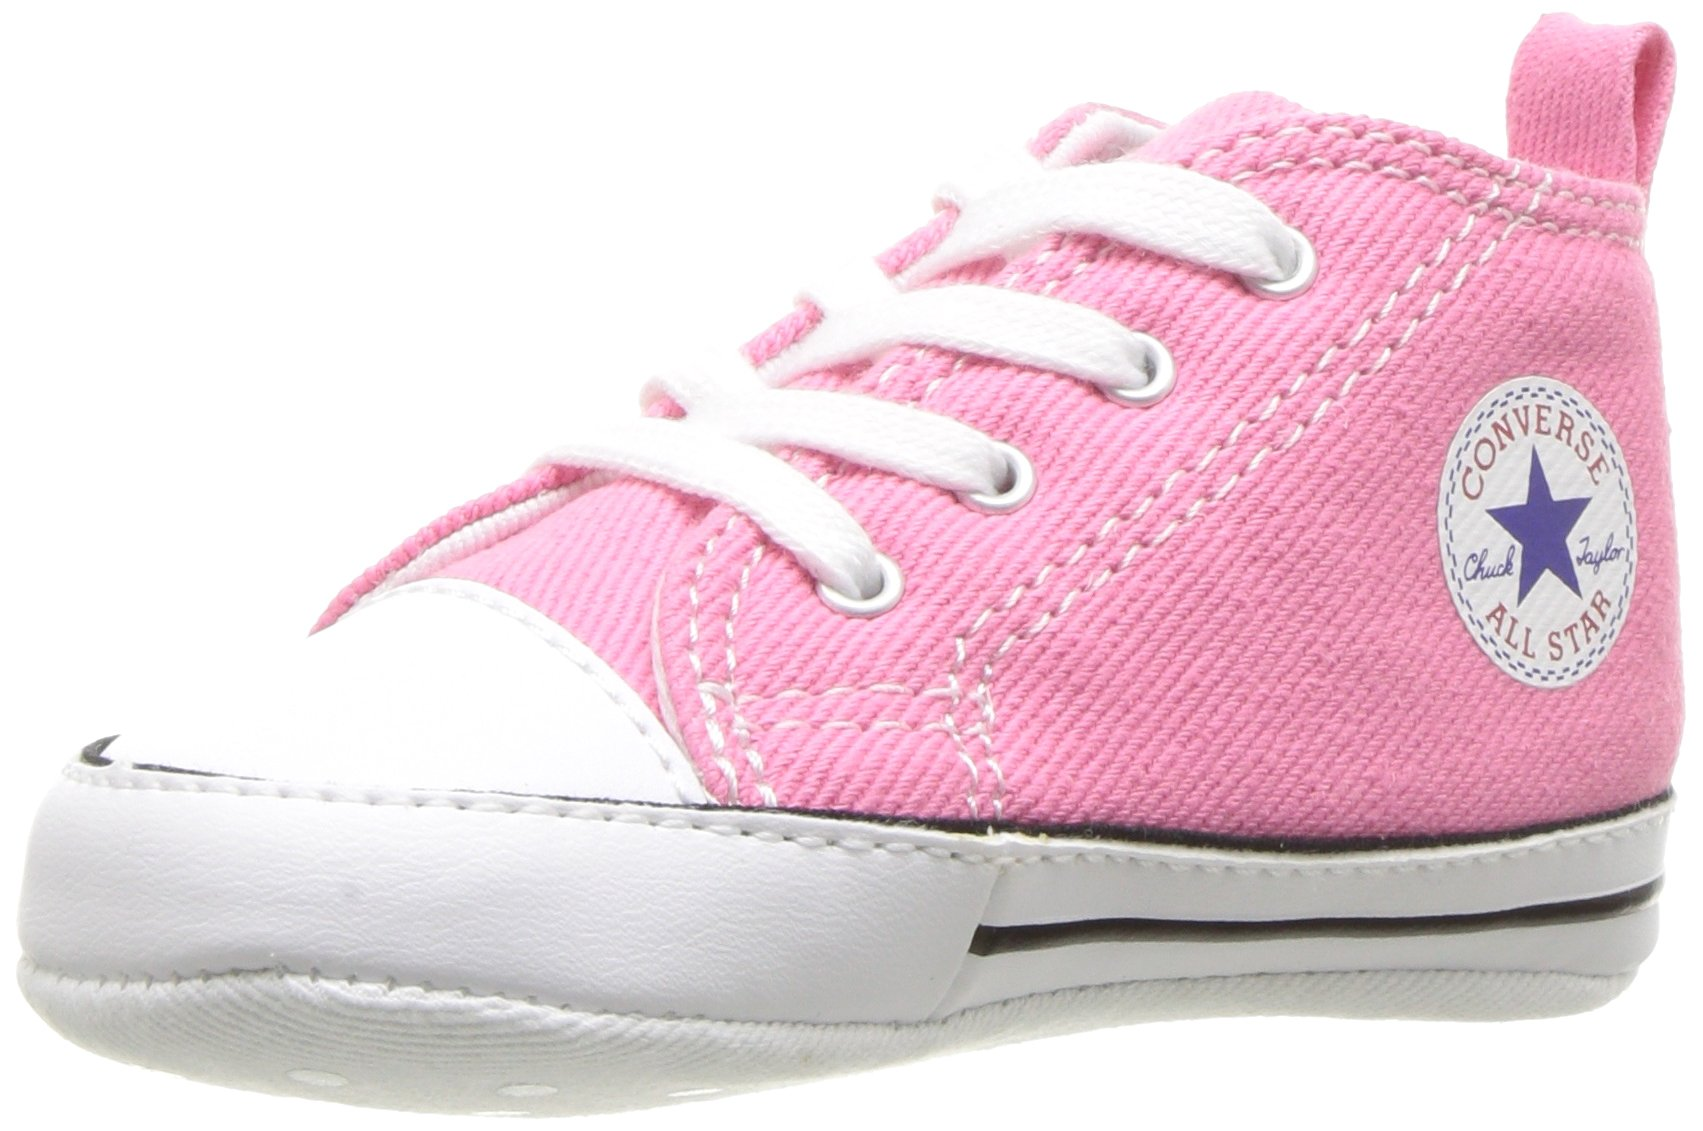 Converse Kids' First Star High Top Sneaker, Pink, 4 M US Toddler